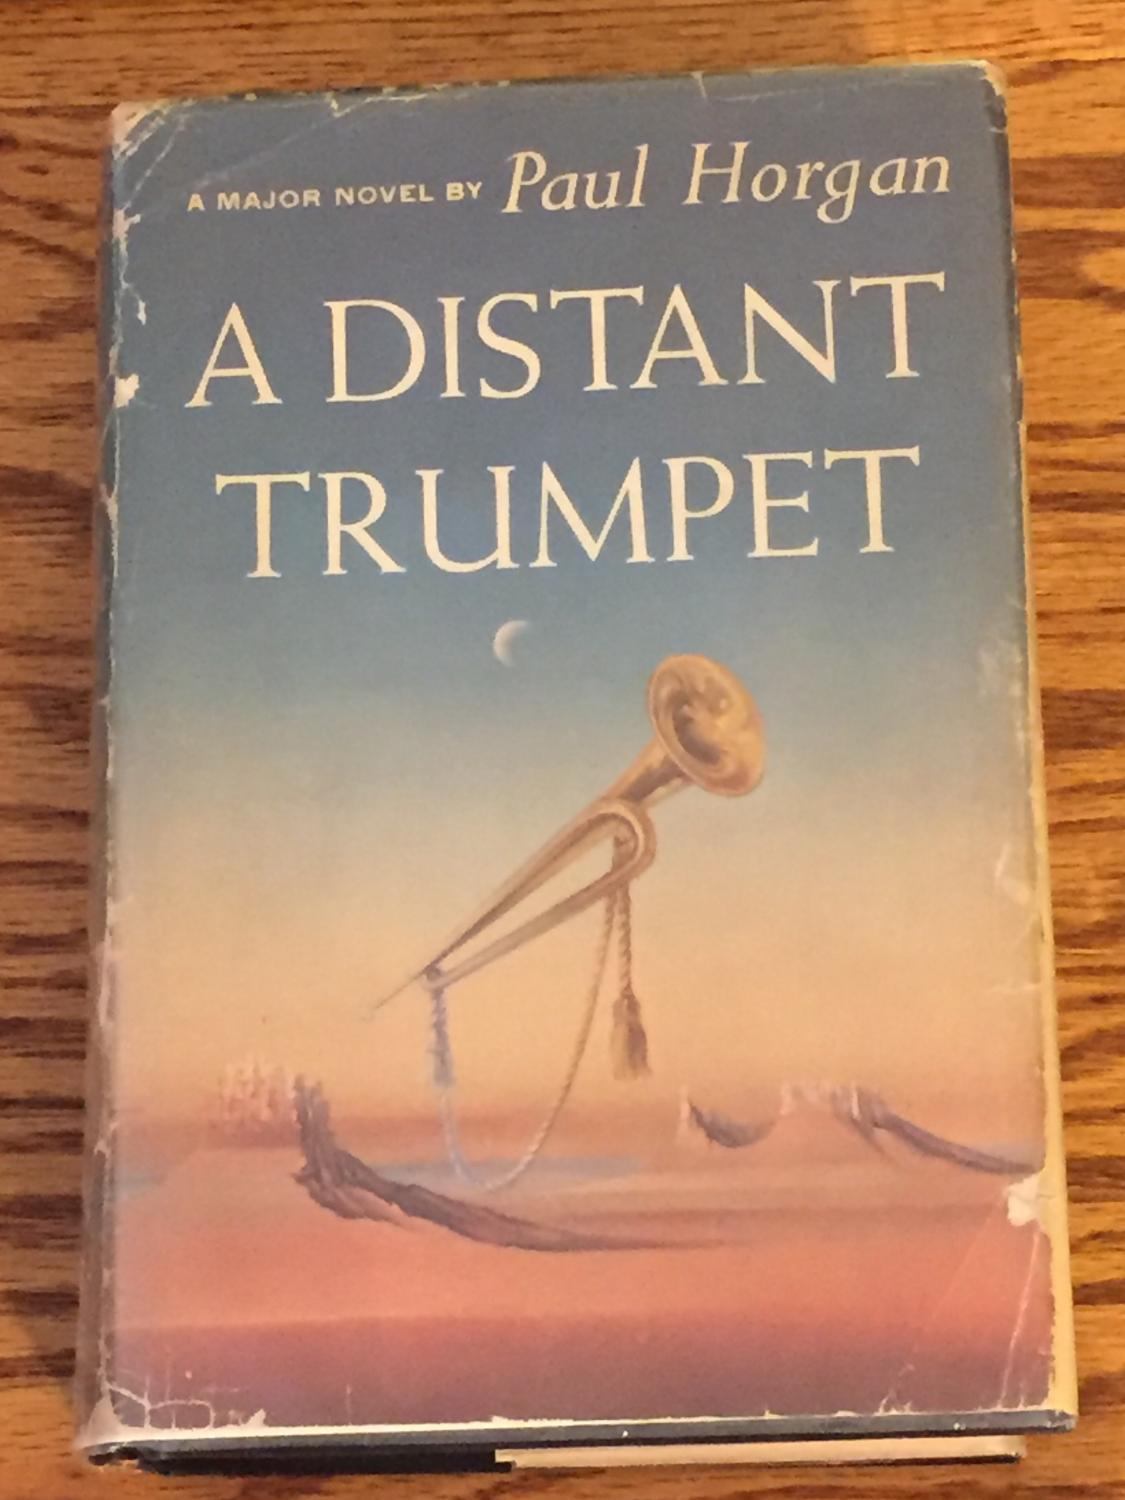 Image result for a distant trumpet book